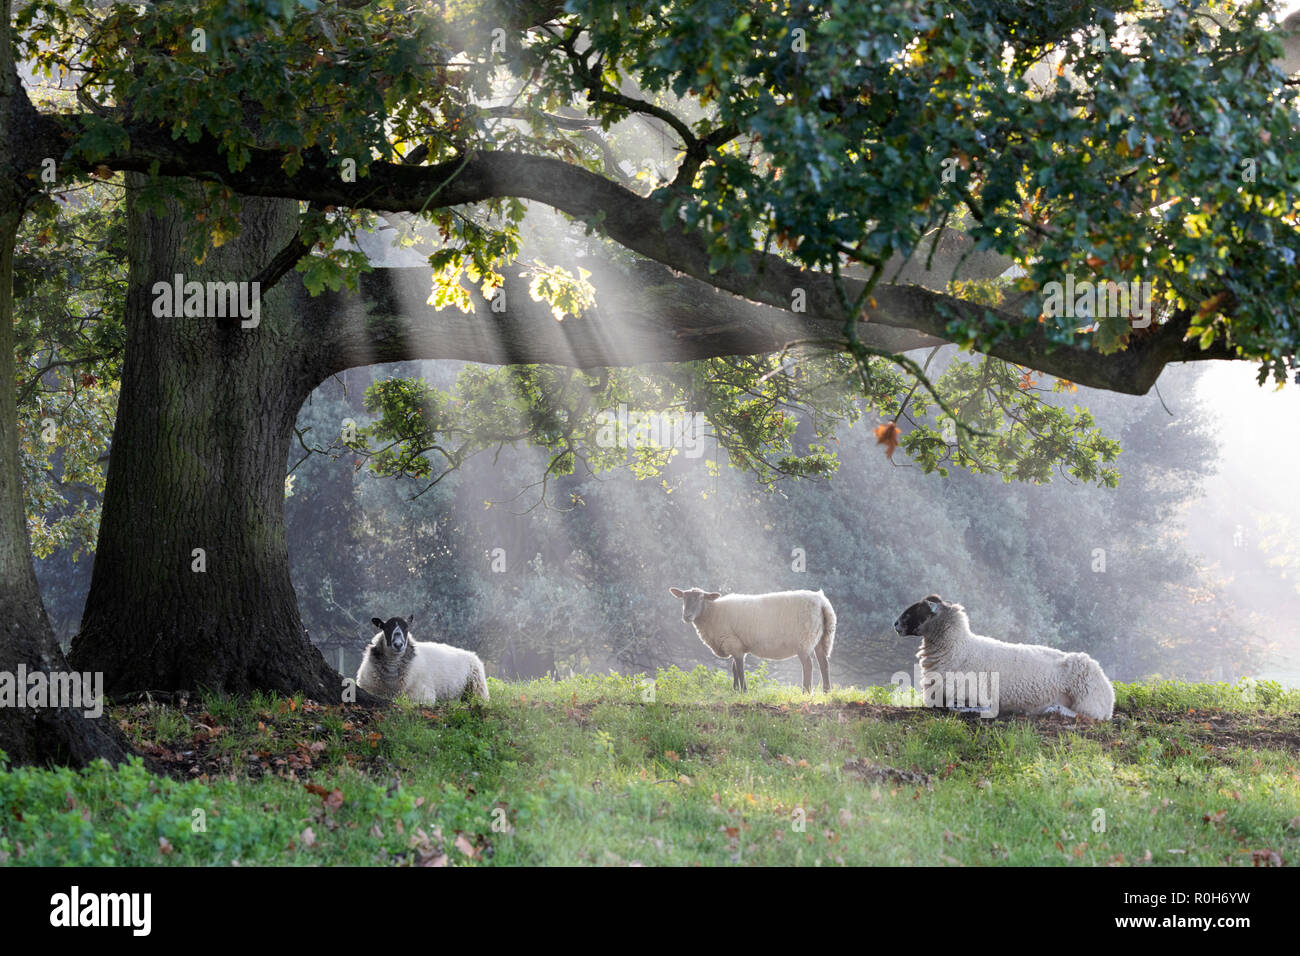 White sheep under tree with shafts of misty sunlight, Chipping Campden, Cotswolds, Gloucestershire, England, United Kingdom, Europe Stock Photo